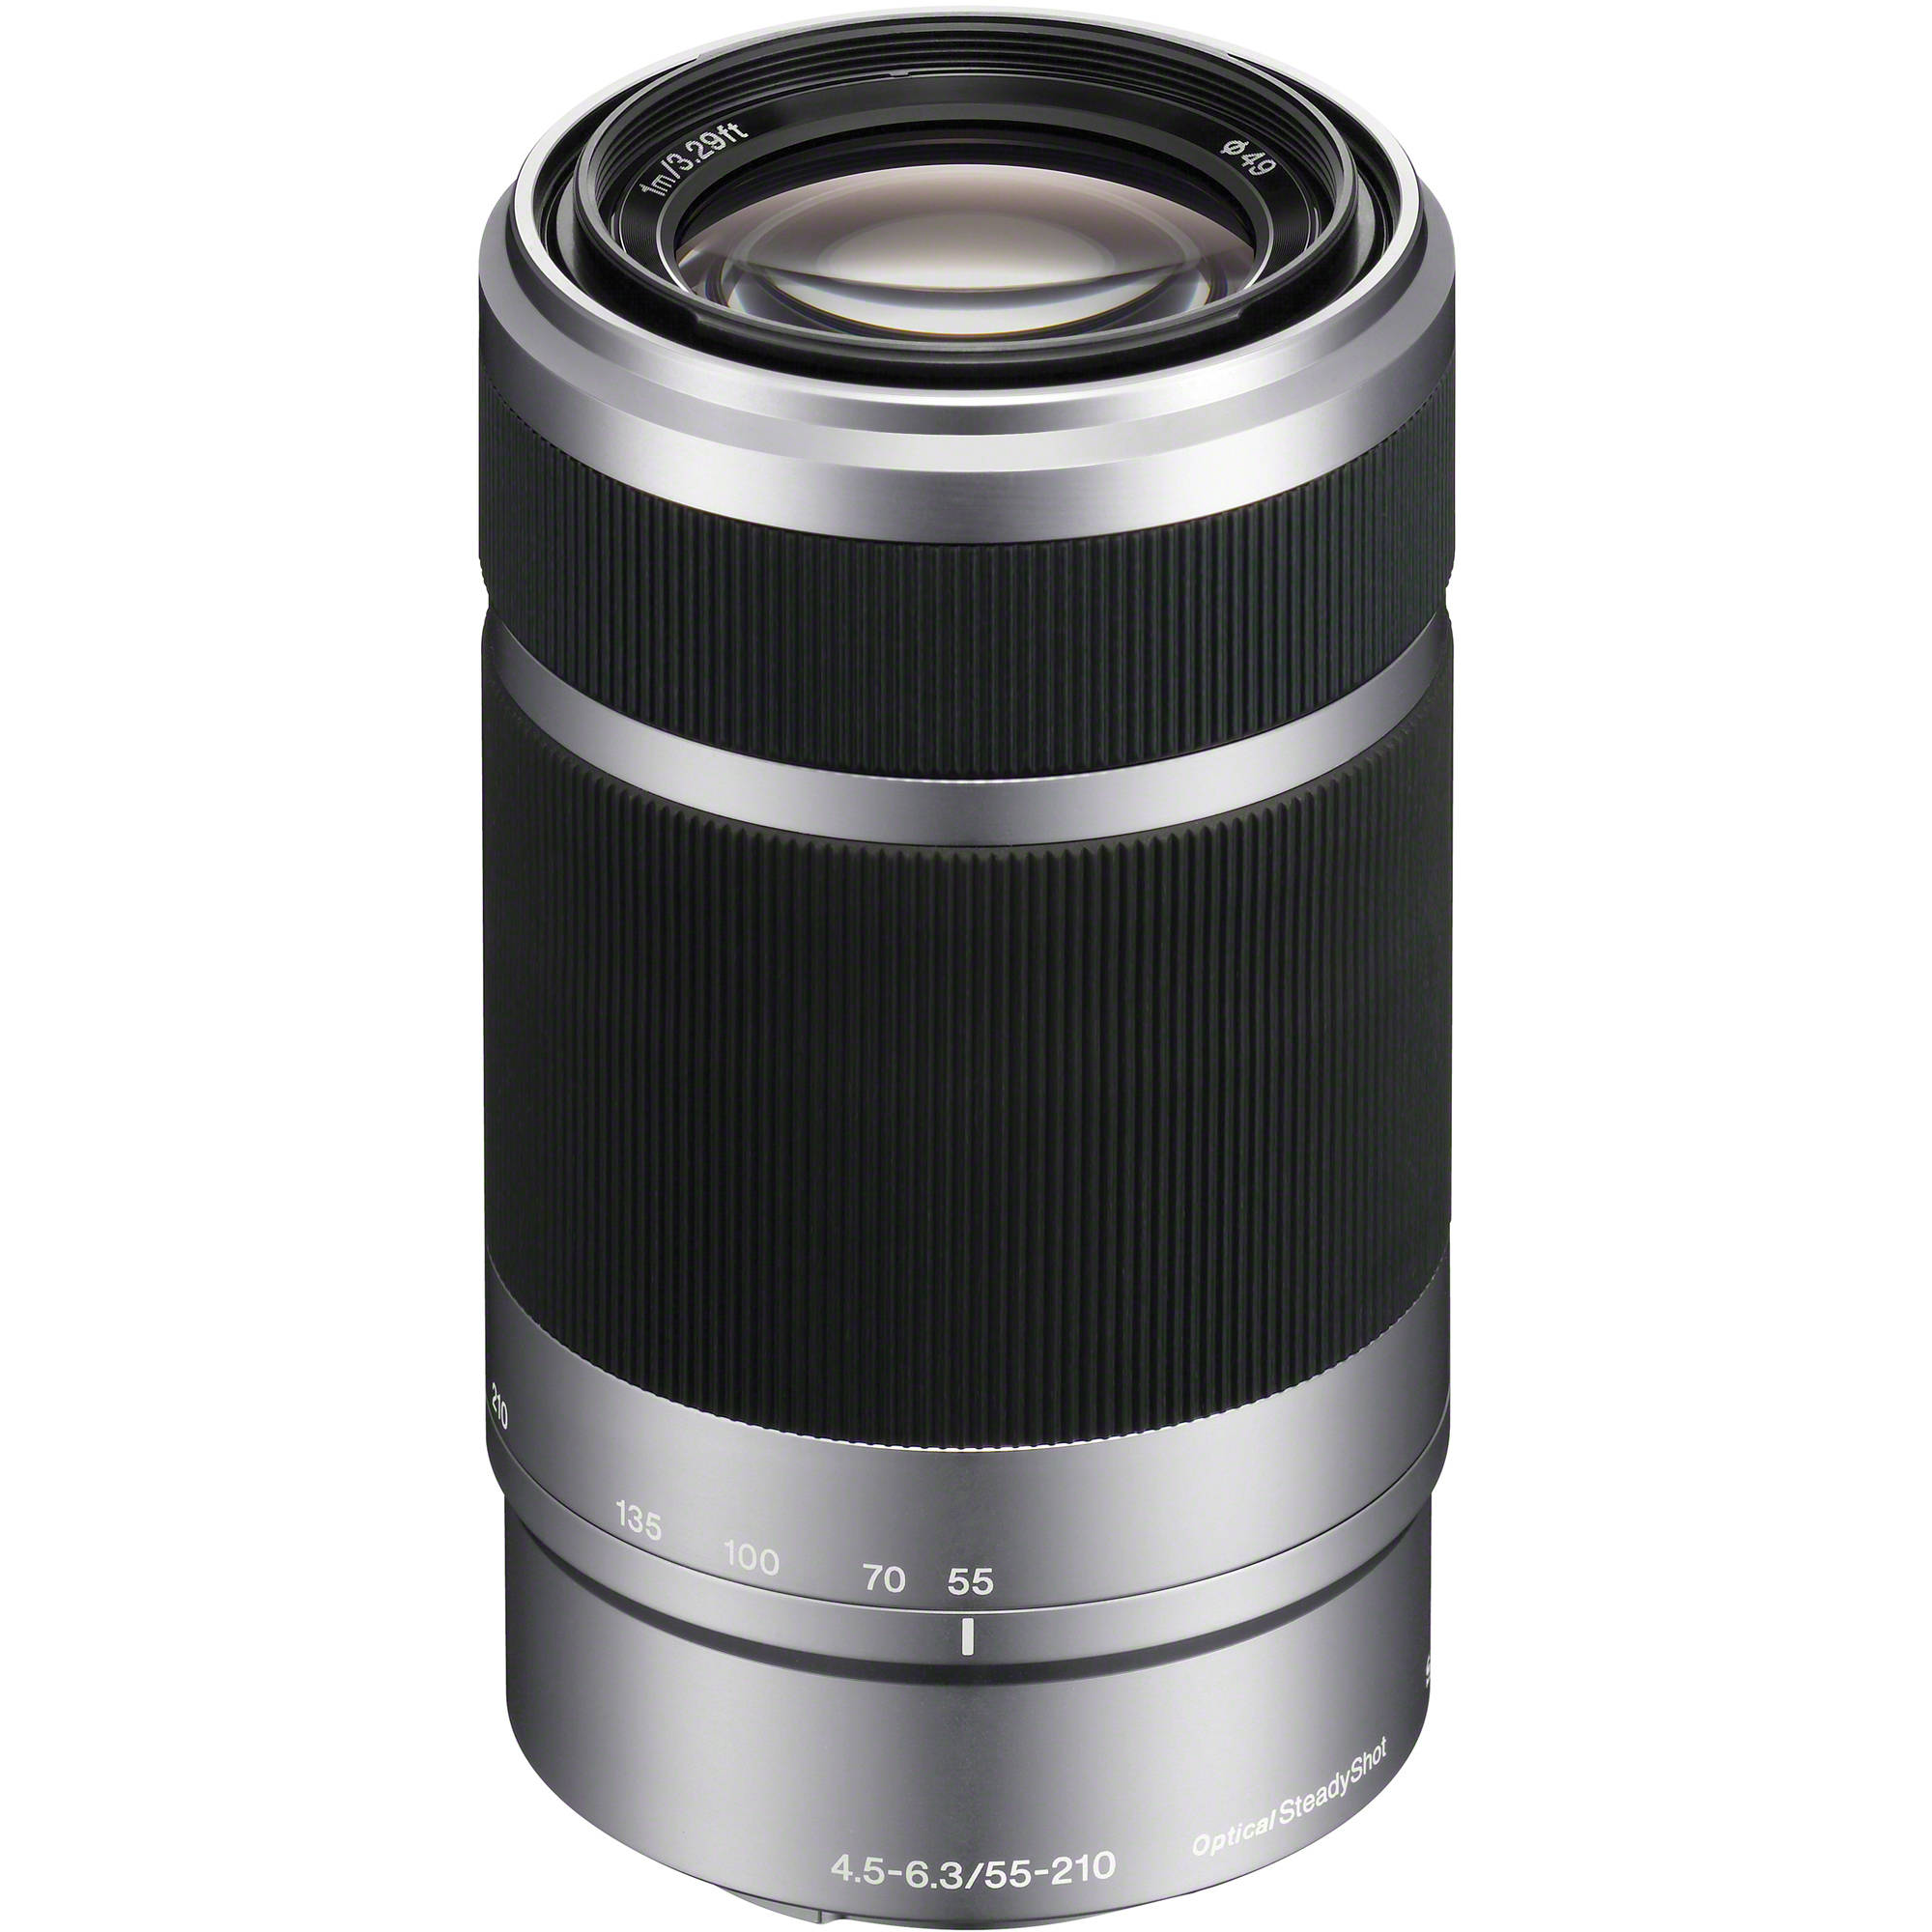 sony e 55 210mm f 4 5 6 3 oss lens silver sel55210 b h photo. Black Bedroom Furniture Sets. Home Design Ideas